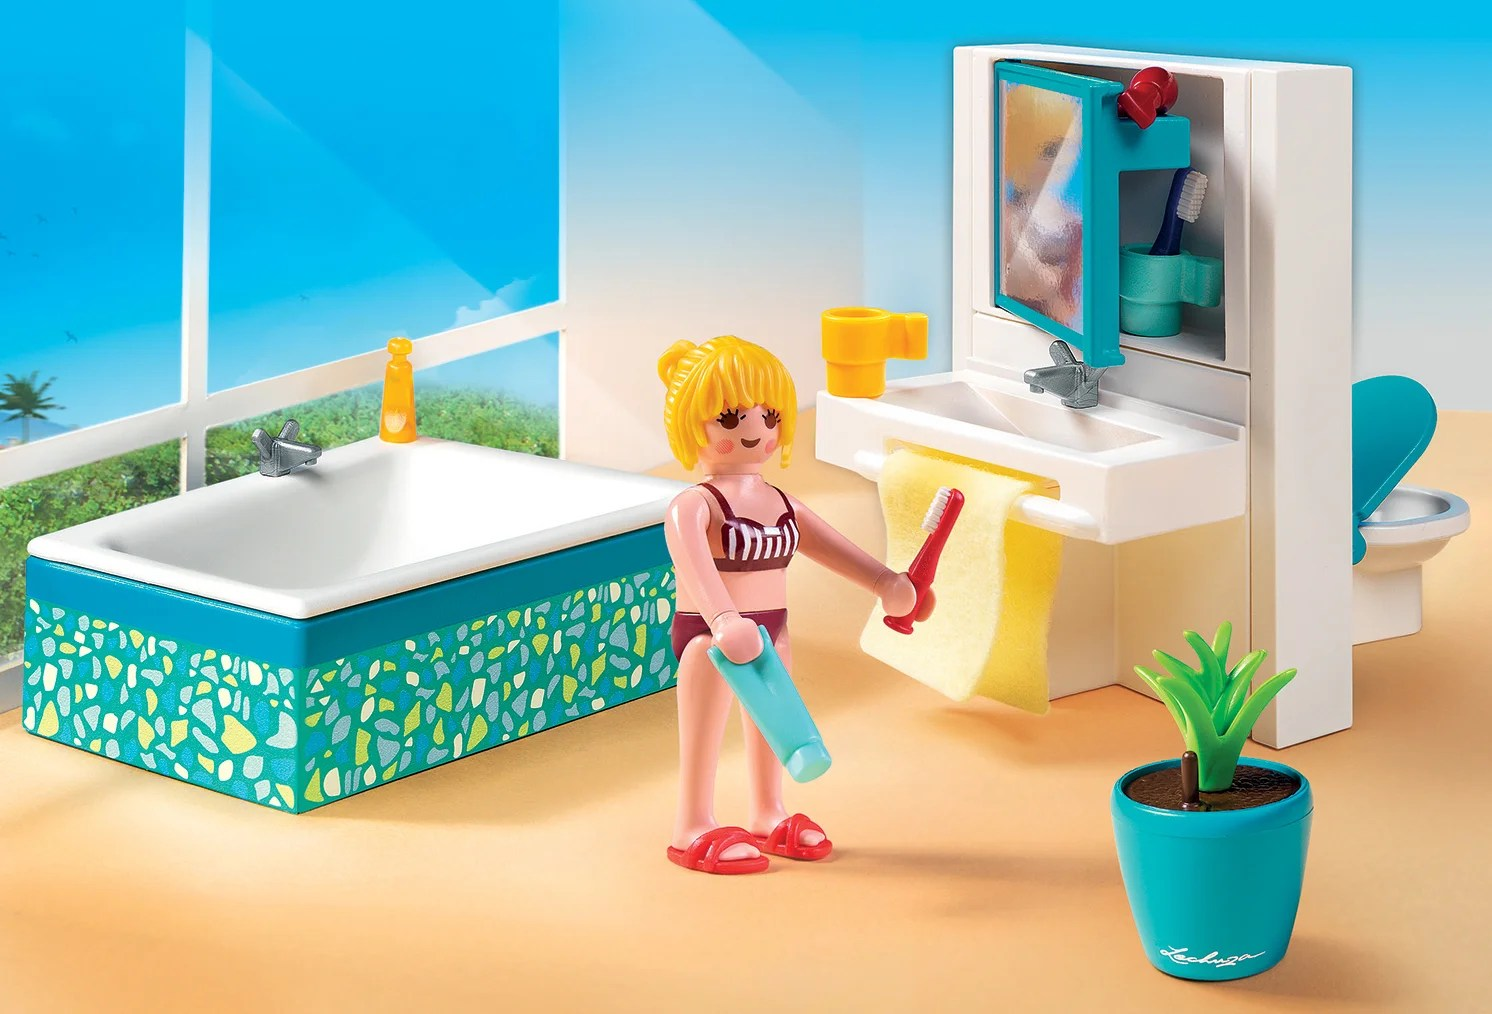 Playmobil 5577 - Modernes Badezimmer It 39s Ok To Be Jealous Of Playmobil 39s New Ultra Modern